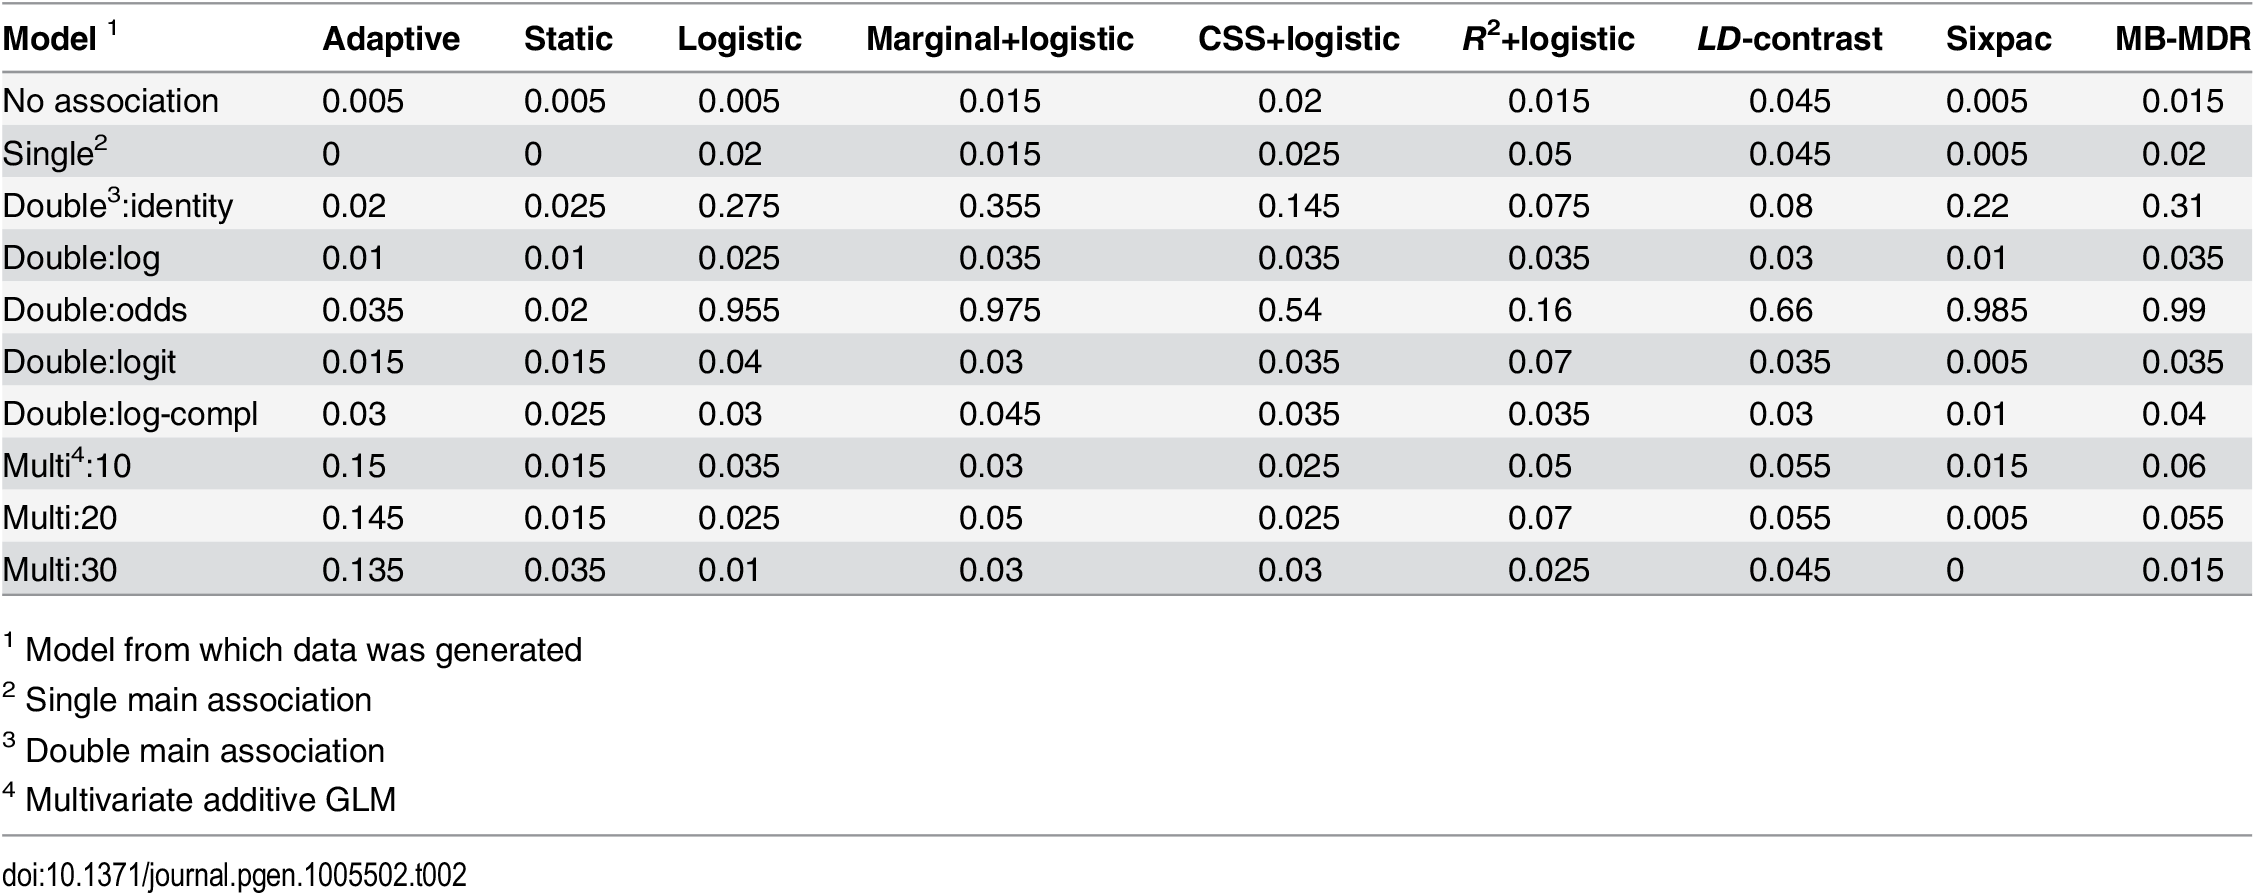 Estimated family-wise error rate for all methods under different null models, using a significance threshold of 0.05.